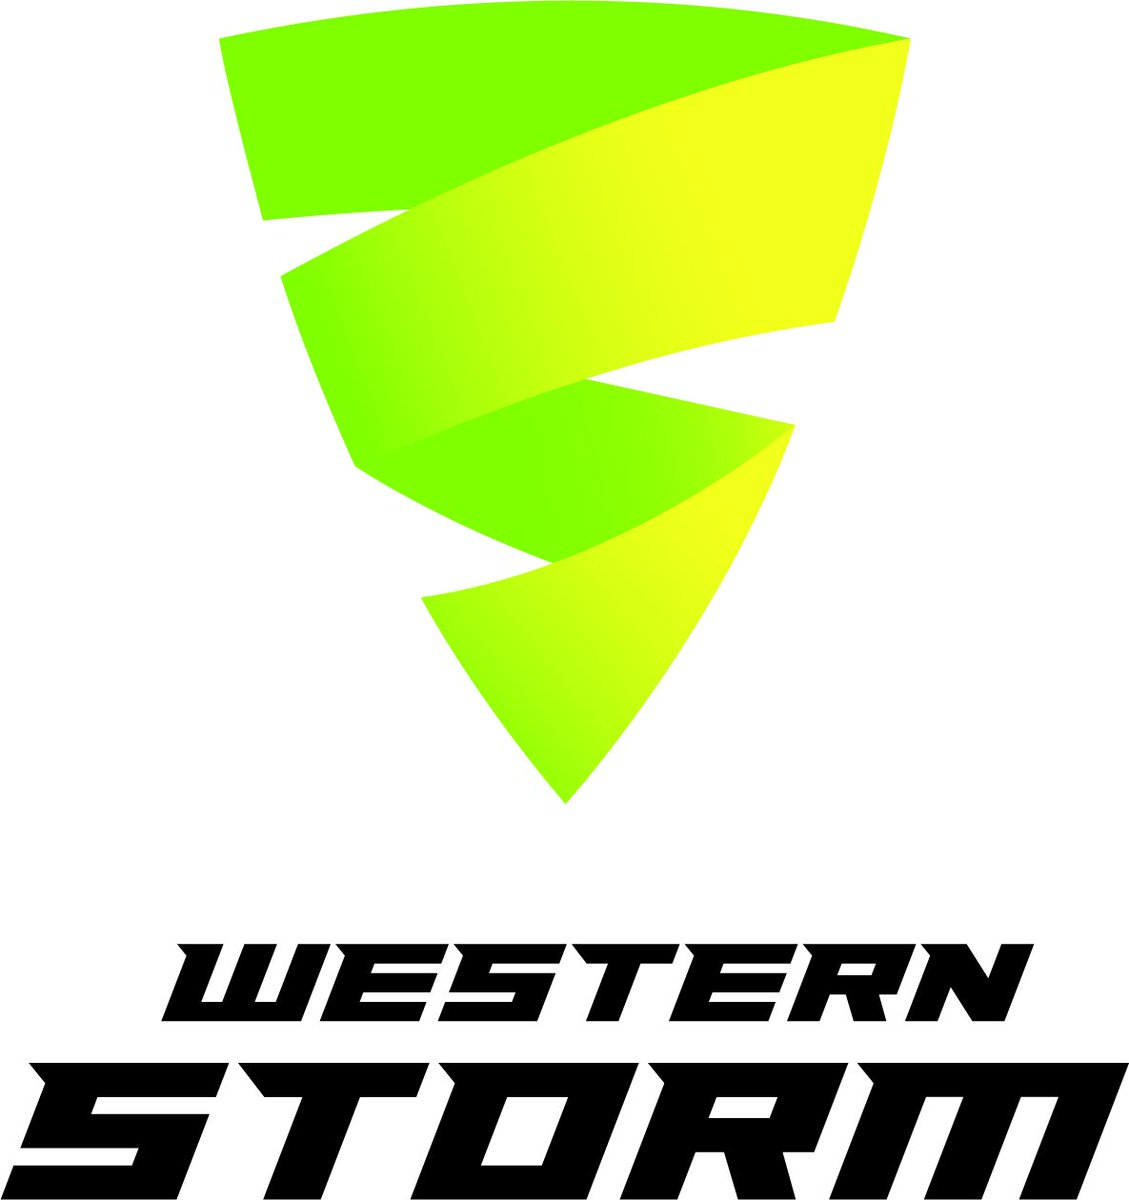 test Twitter Media - Storm Champions is back 🌪  Winterbourne - 23rd April - https://t.co/xUdoo4Cg55 Hartpury - 26th April - https://t.co/ZziCJVZVh5  Every participant receives a t-shirt and coaching cards👕  Please circulate to your players & lets make our training sessions more exciting than ever😄 https://t.co/m1zVEFGG6q